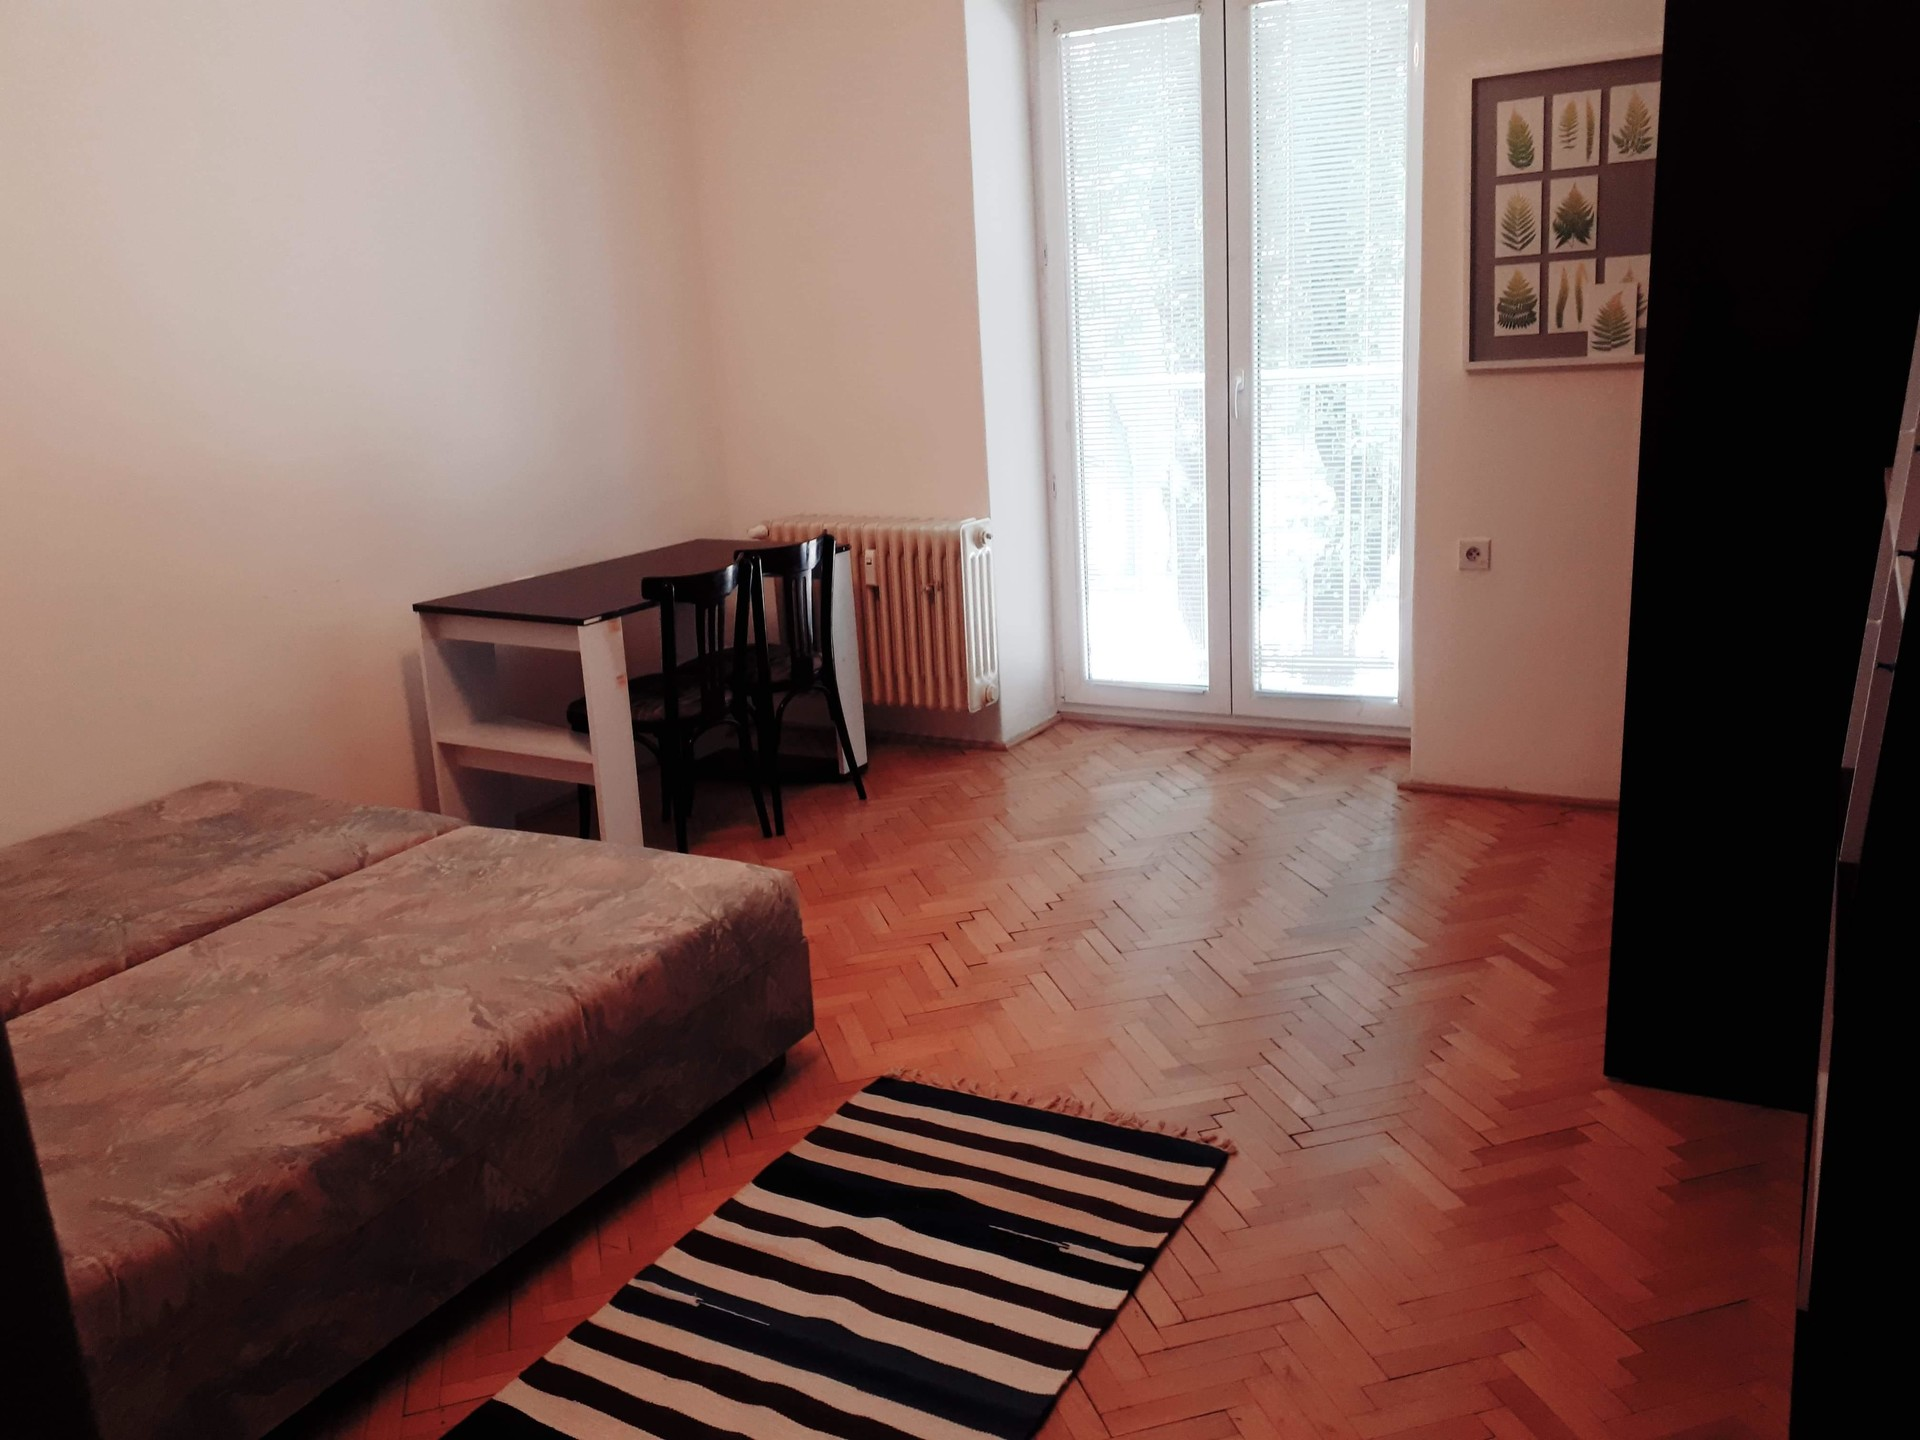 accomodation-wide-center-bratislava-top-location-24a386390ceed52d278a492165304050